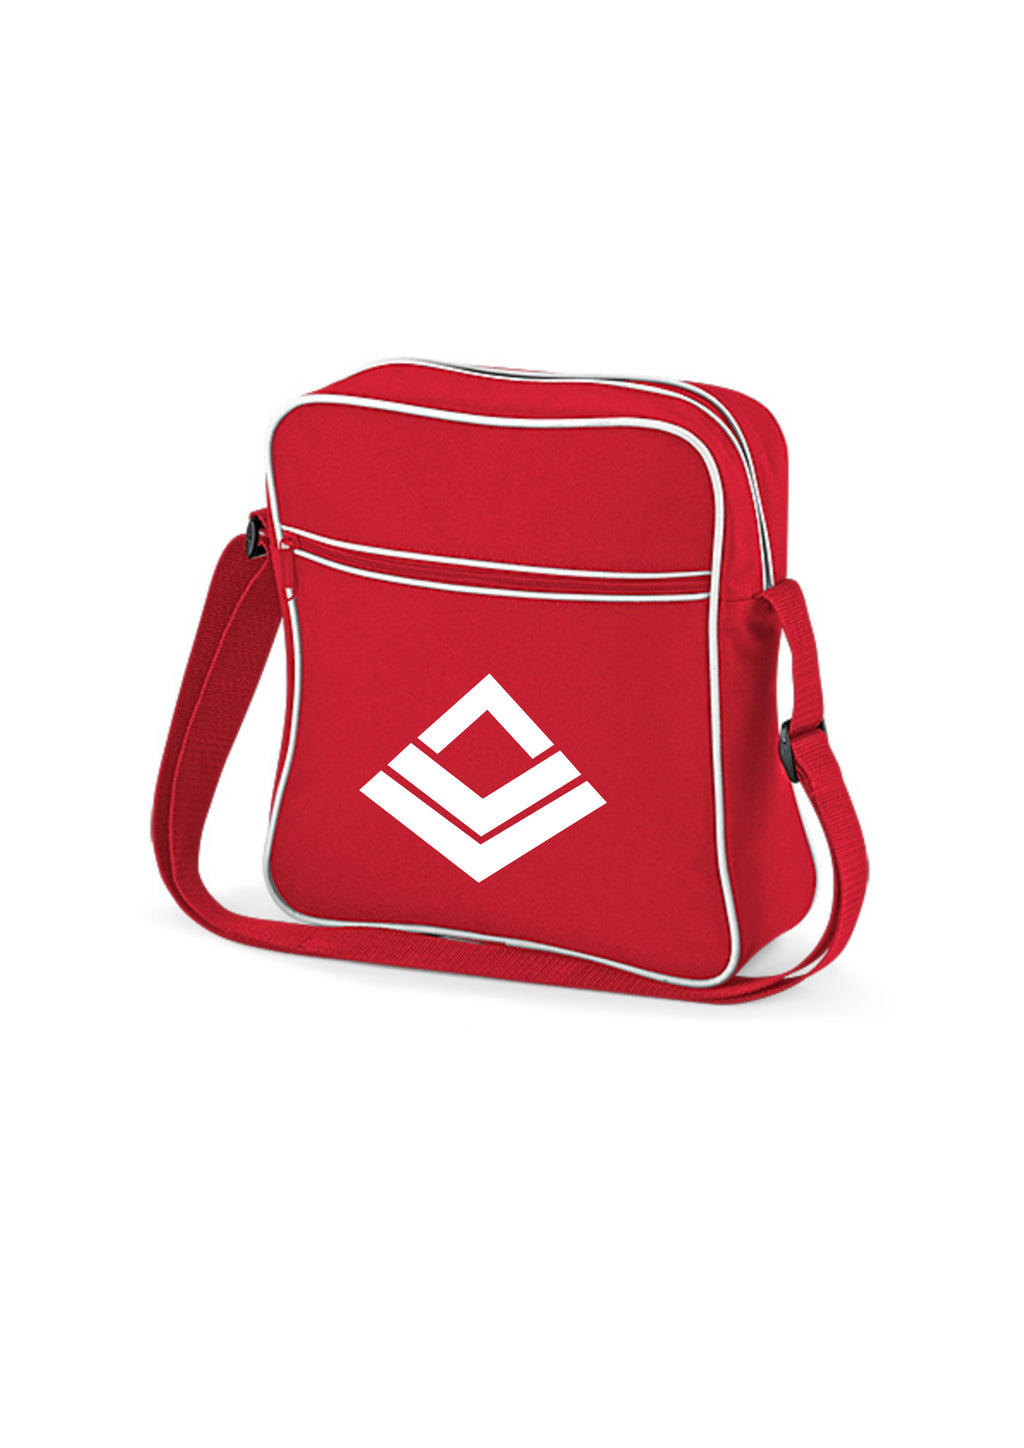 Swaggerlicious Active Red and White Flight Bag - swaggerlicious-clothing.com